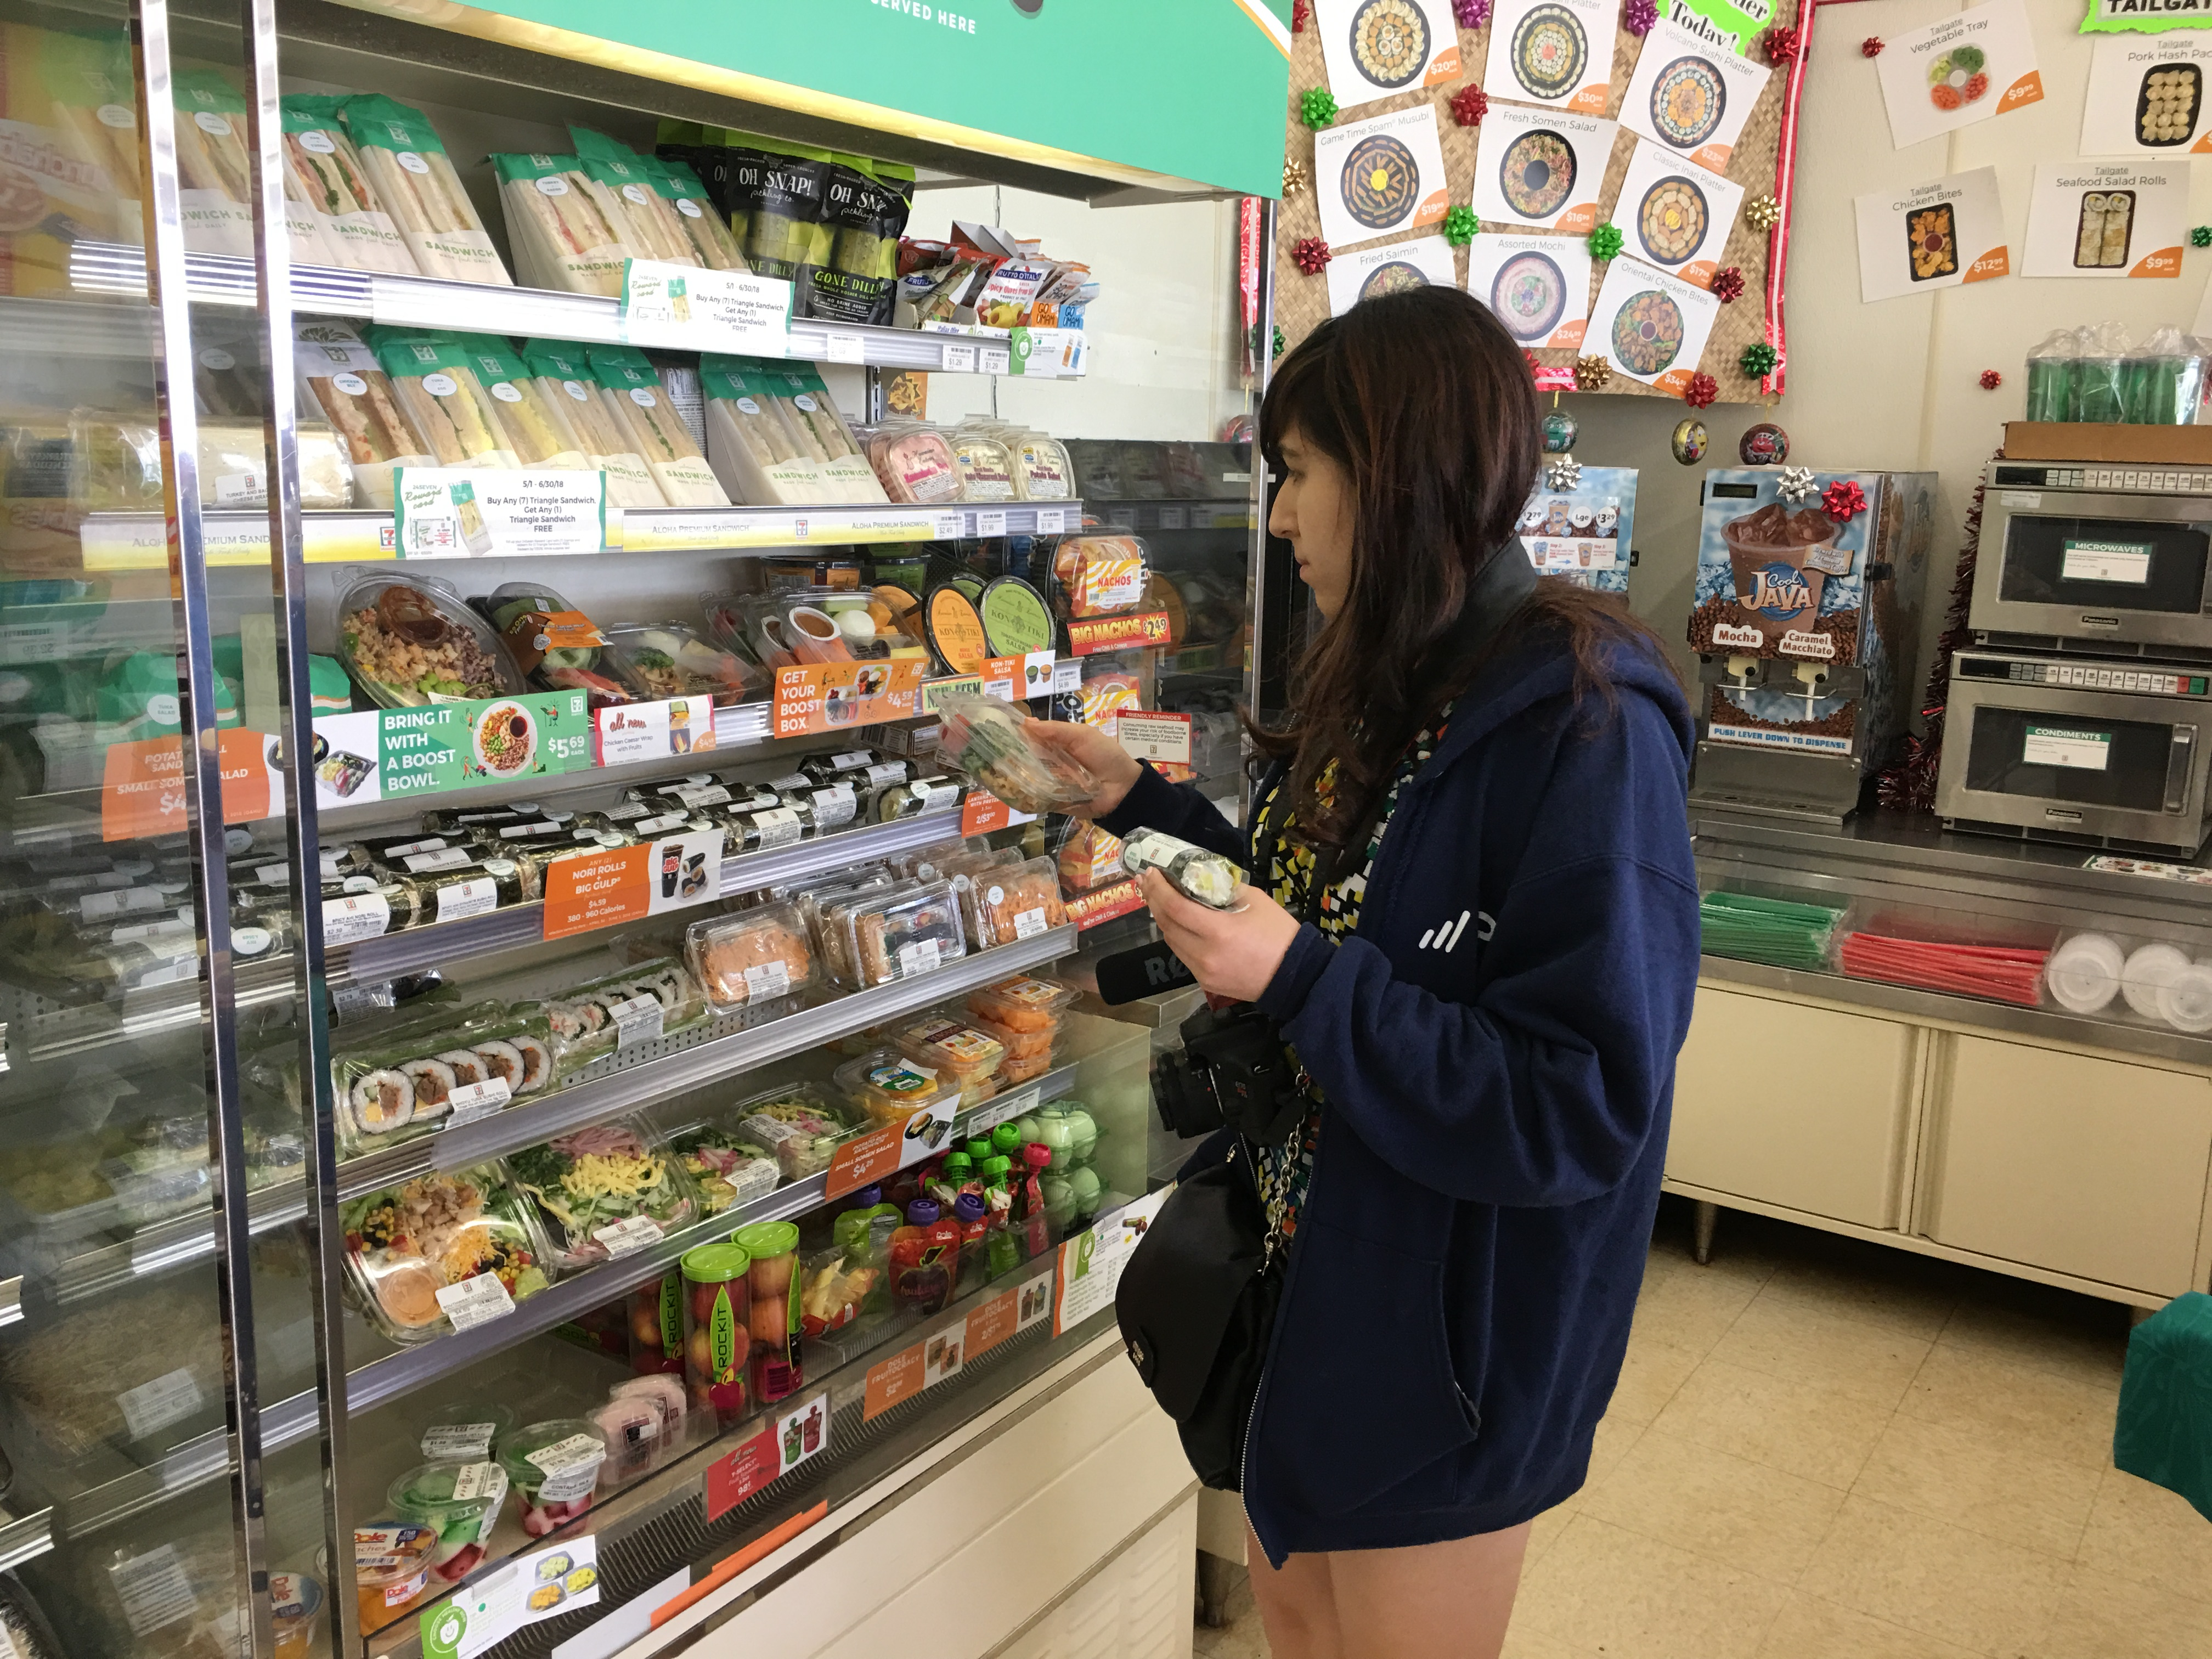 Arianna Etemadieh was blown away by the musubi selection at the Wahiawa 7-11